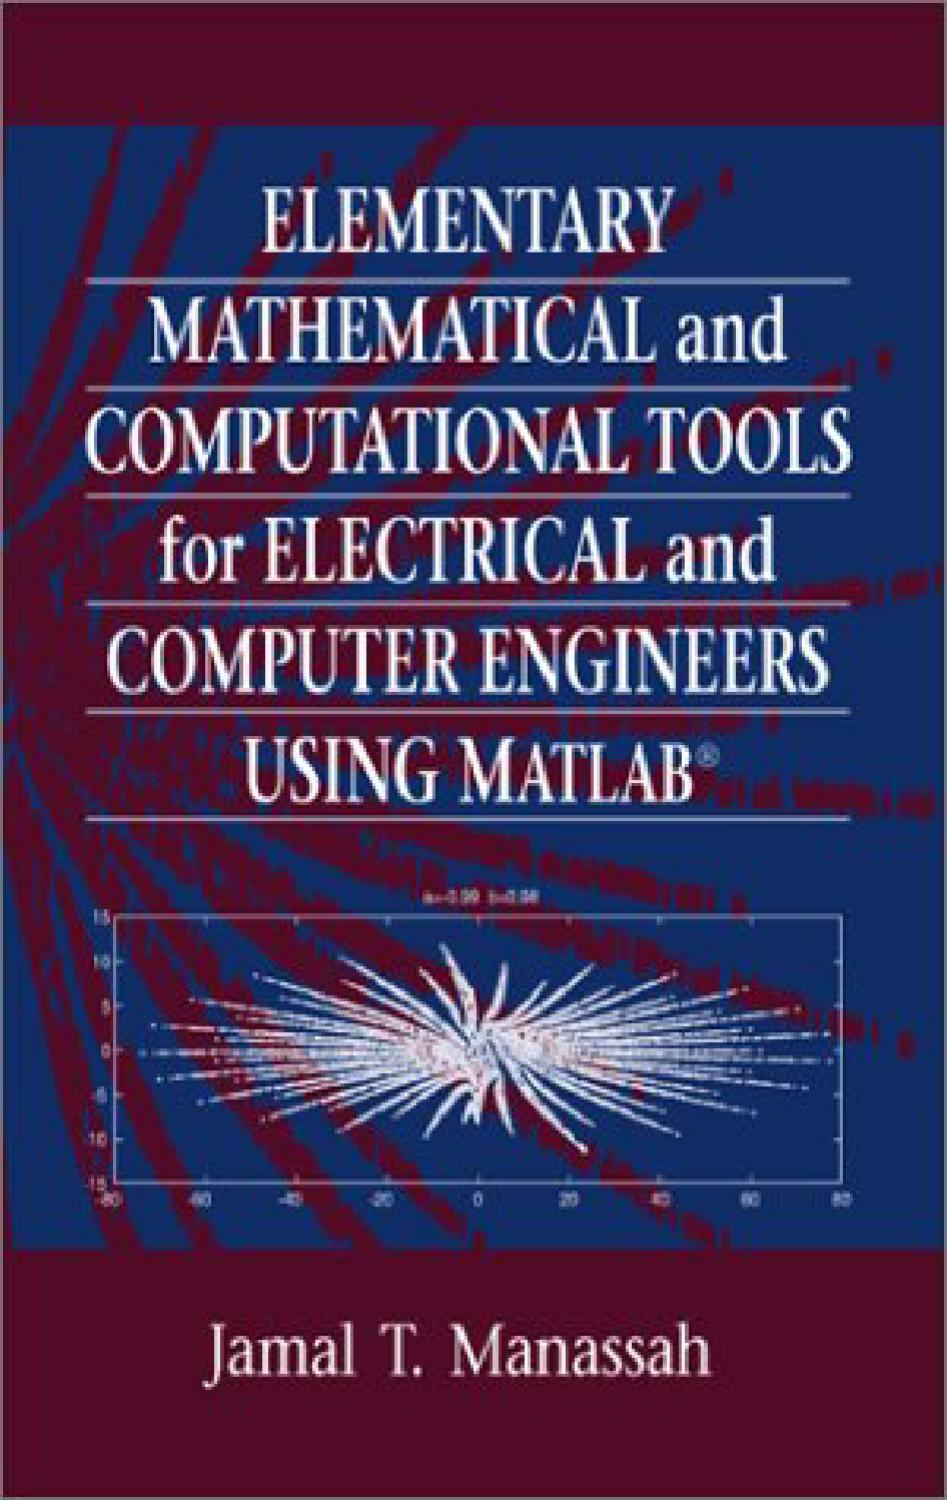 CRC Press - Elem  Math  and Comp  Tools for Engineers using